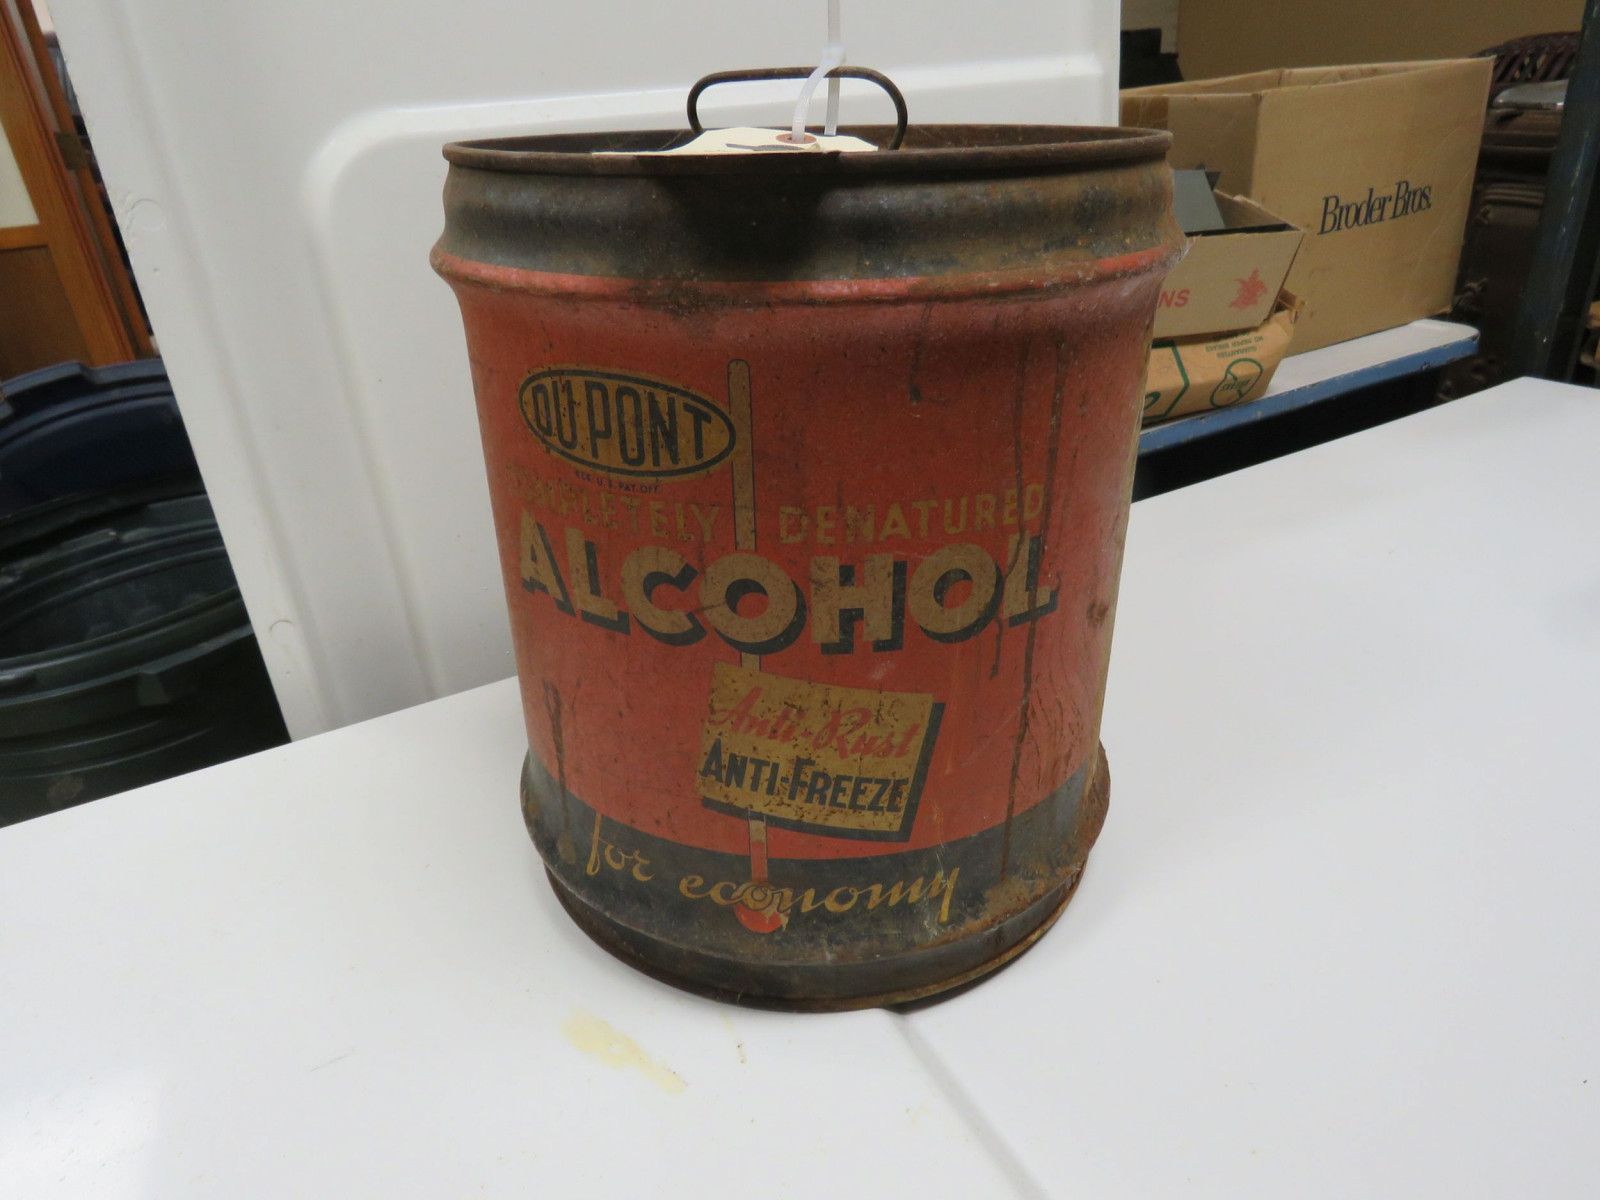 Dupont alcohol 5 Gallon can Empty - Image 1